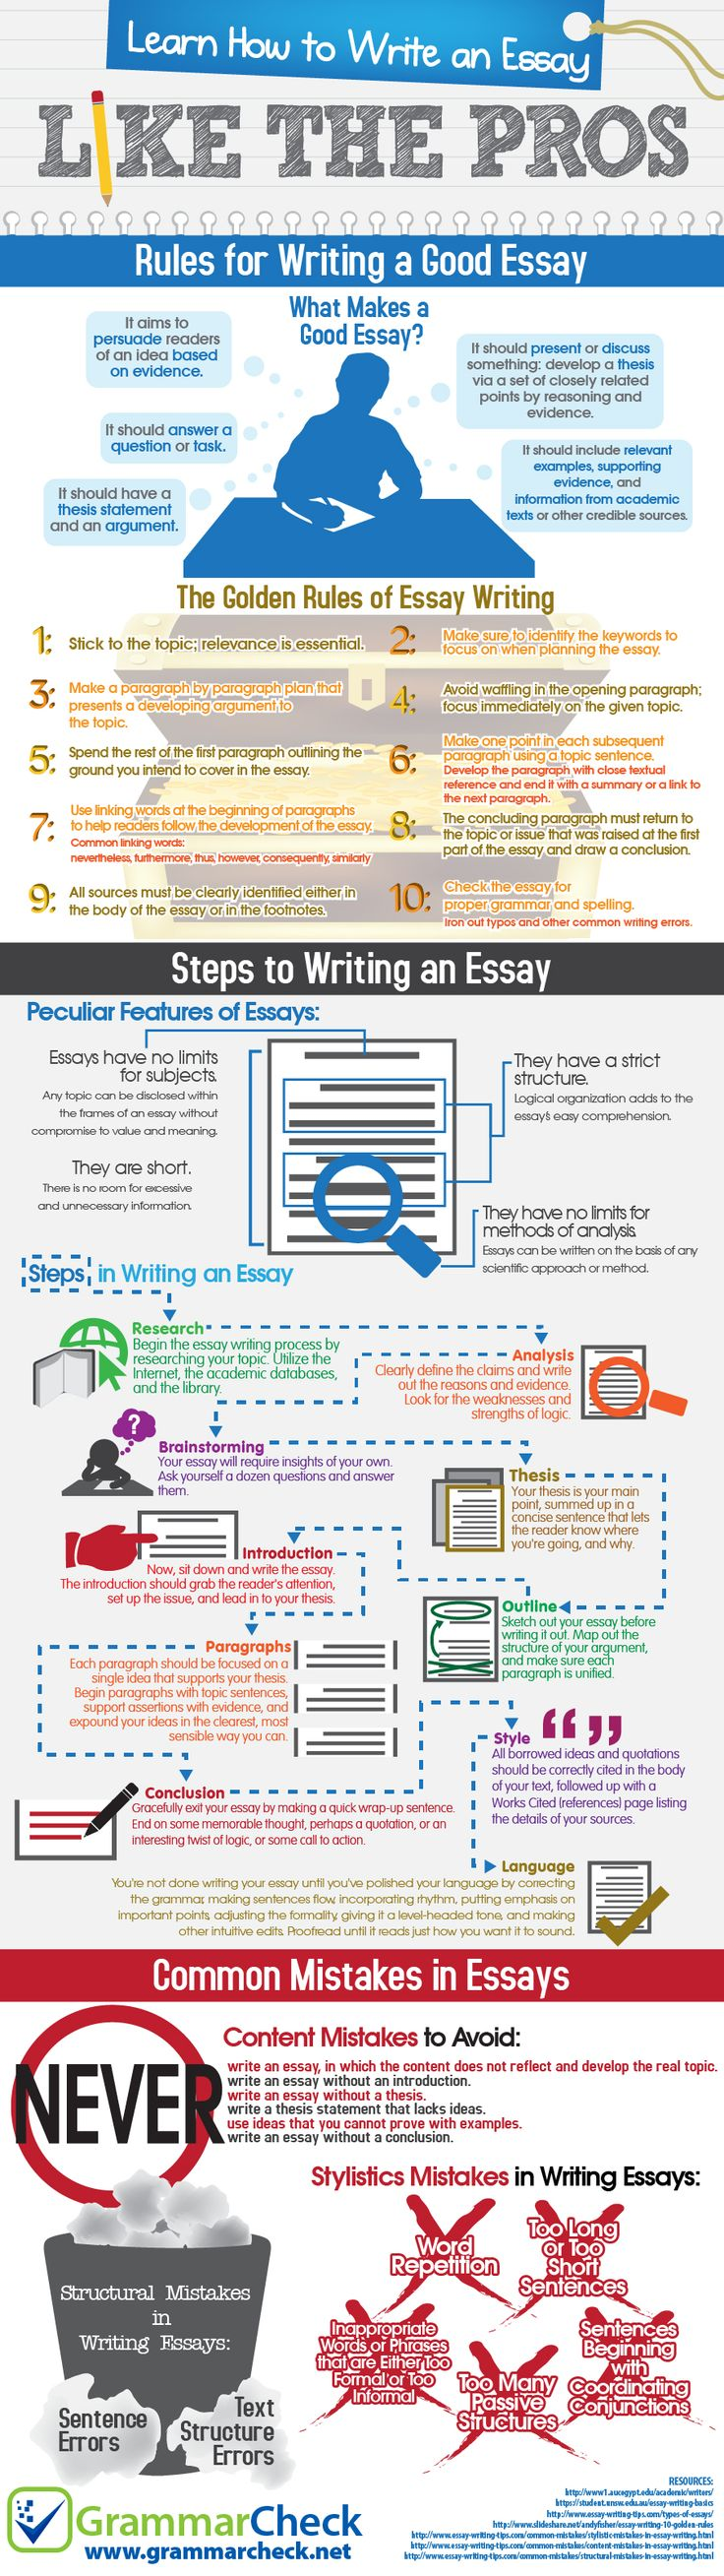 How to Write an Essay Like the Pros| Although ELLs with lower levels of English proficiency will likely require assistance to fully understand the content of this infographic, its clear, concise wording, visual organizers, easy-to-follow steps detailing every part of the writing process, and tips for avoiding common mistakes could make this an invaluable resource for ELLs working on their essay writing skills.